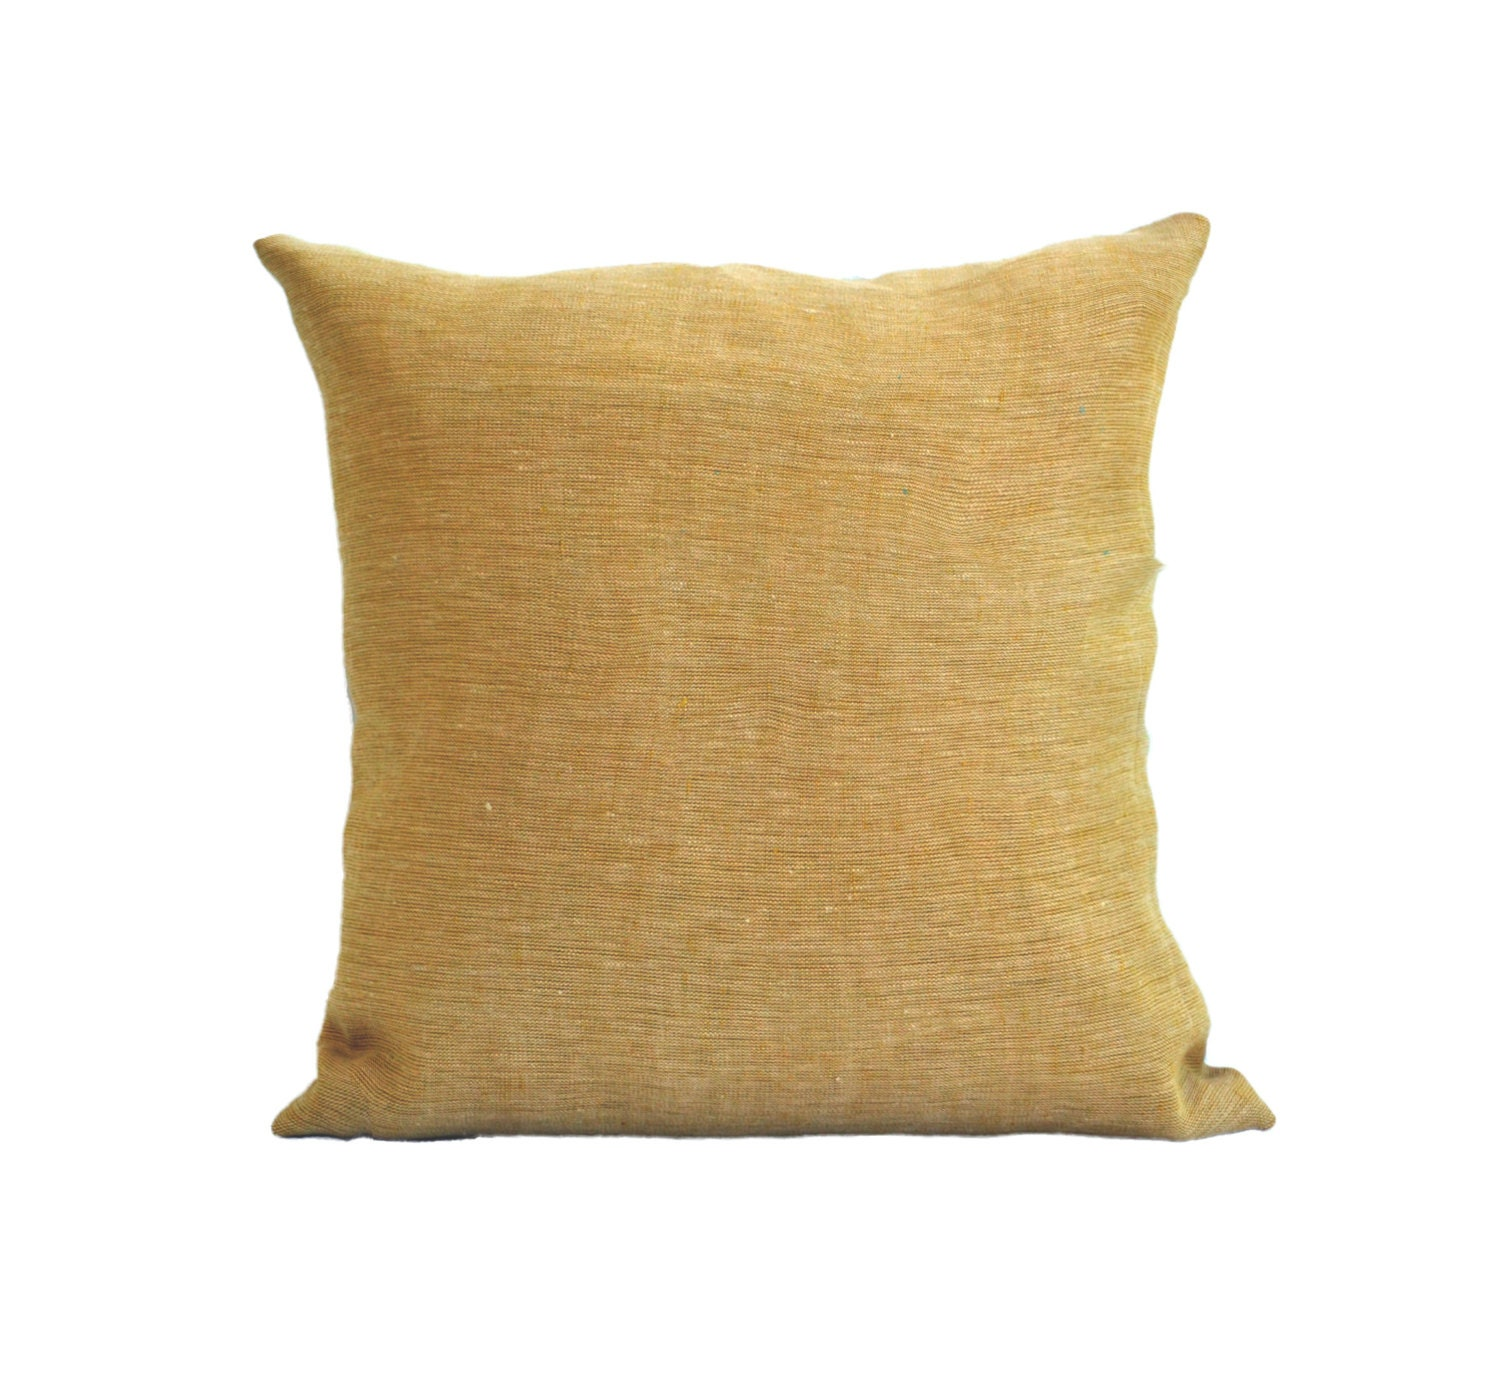 Pale Yellow Decorative Pillows : Natural linen pale yellow pillow cushion with zipper pale